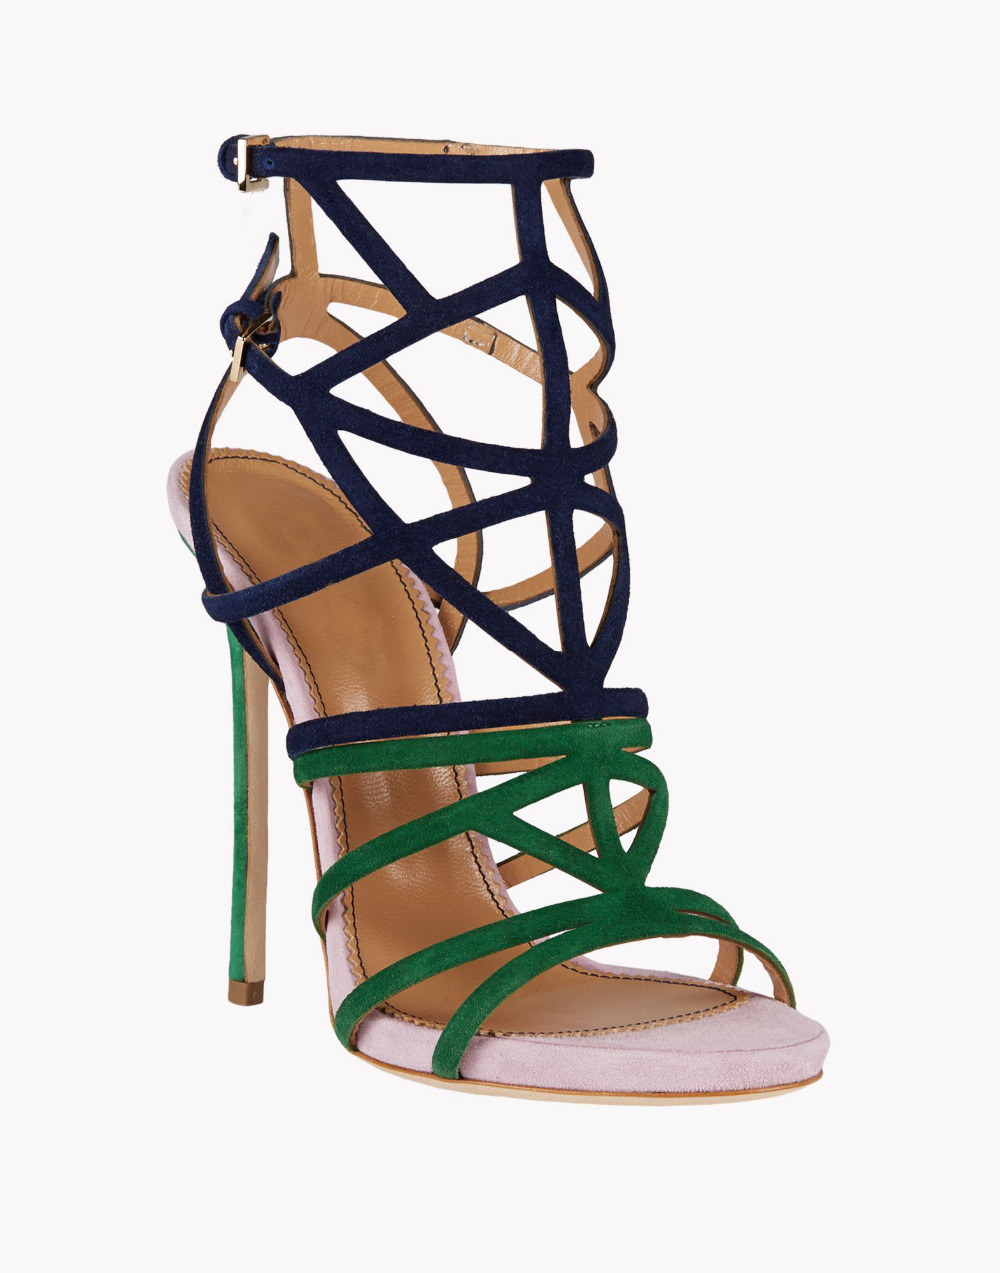 73e7ef62c5c Name brand multicolor suede strap crisscross sandals contrast color strappy  sandals double ankle buckle strap high heel sandals-in Women s Pumps from  Shoes ...